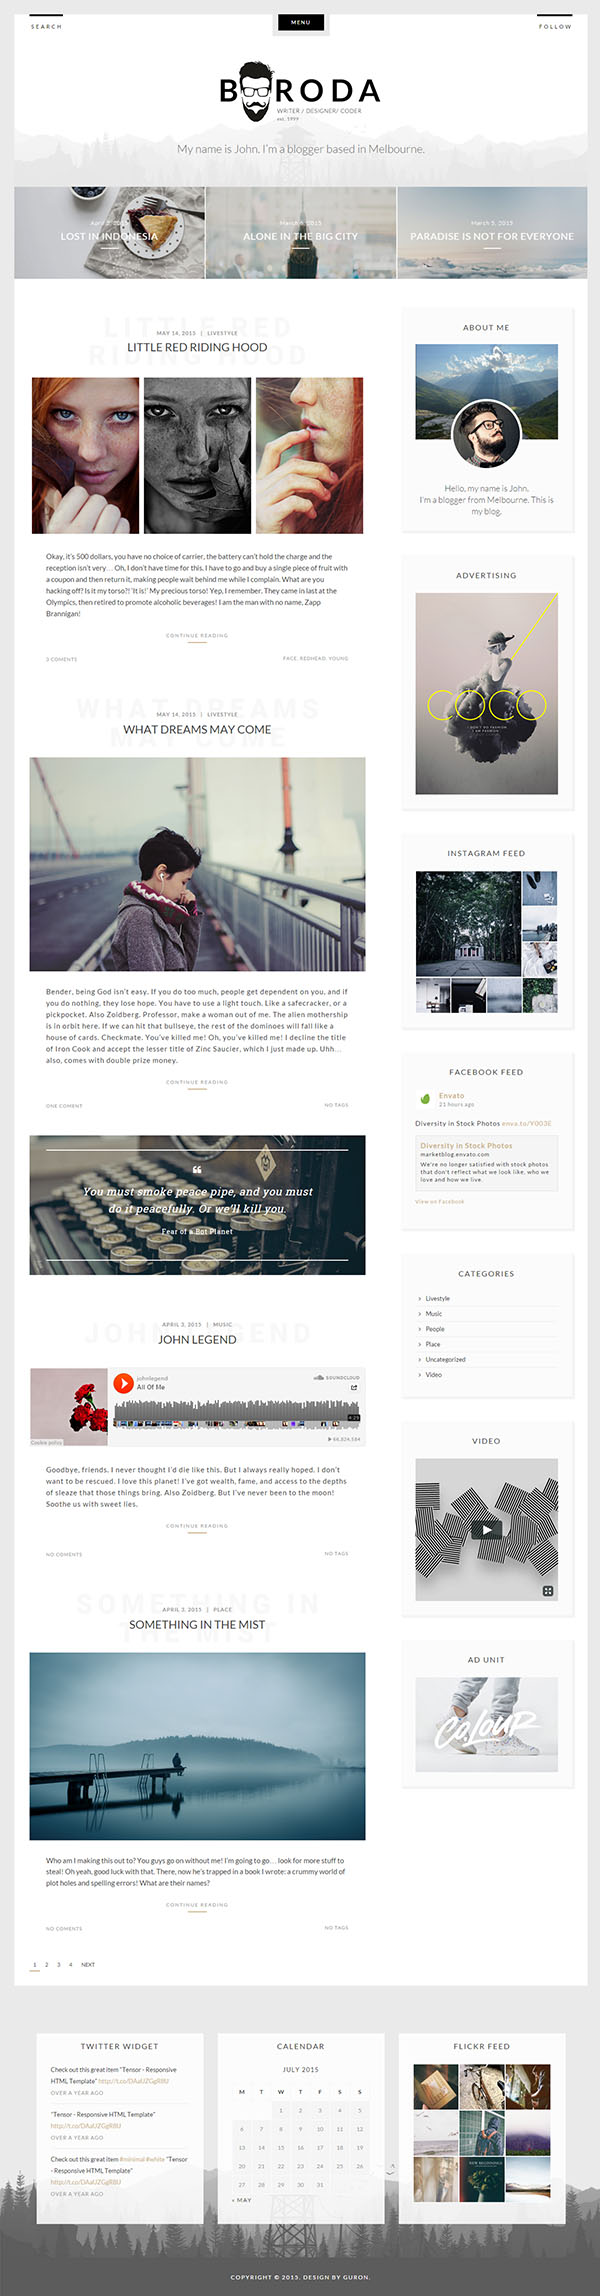 Boroda Personal Blog WordPress Theme